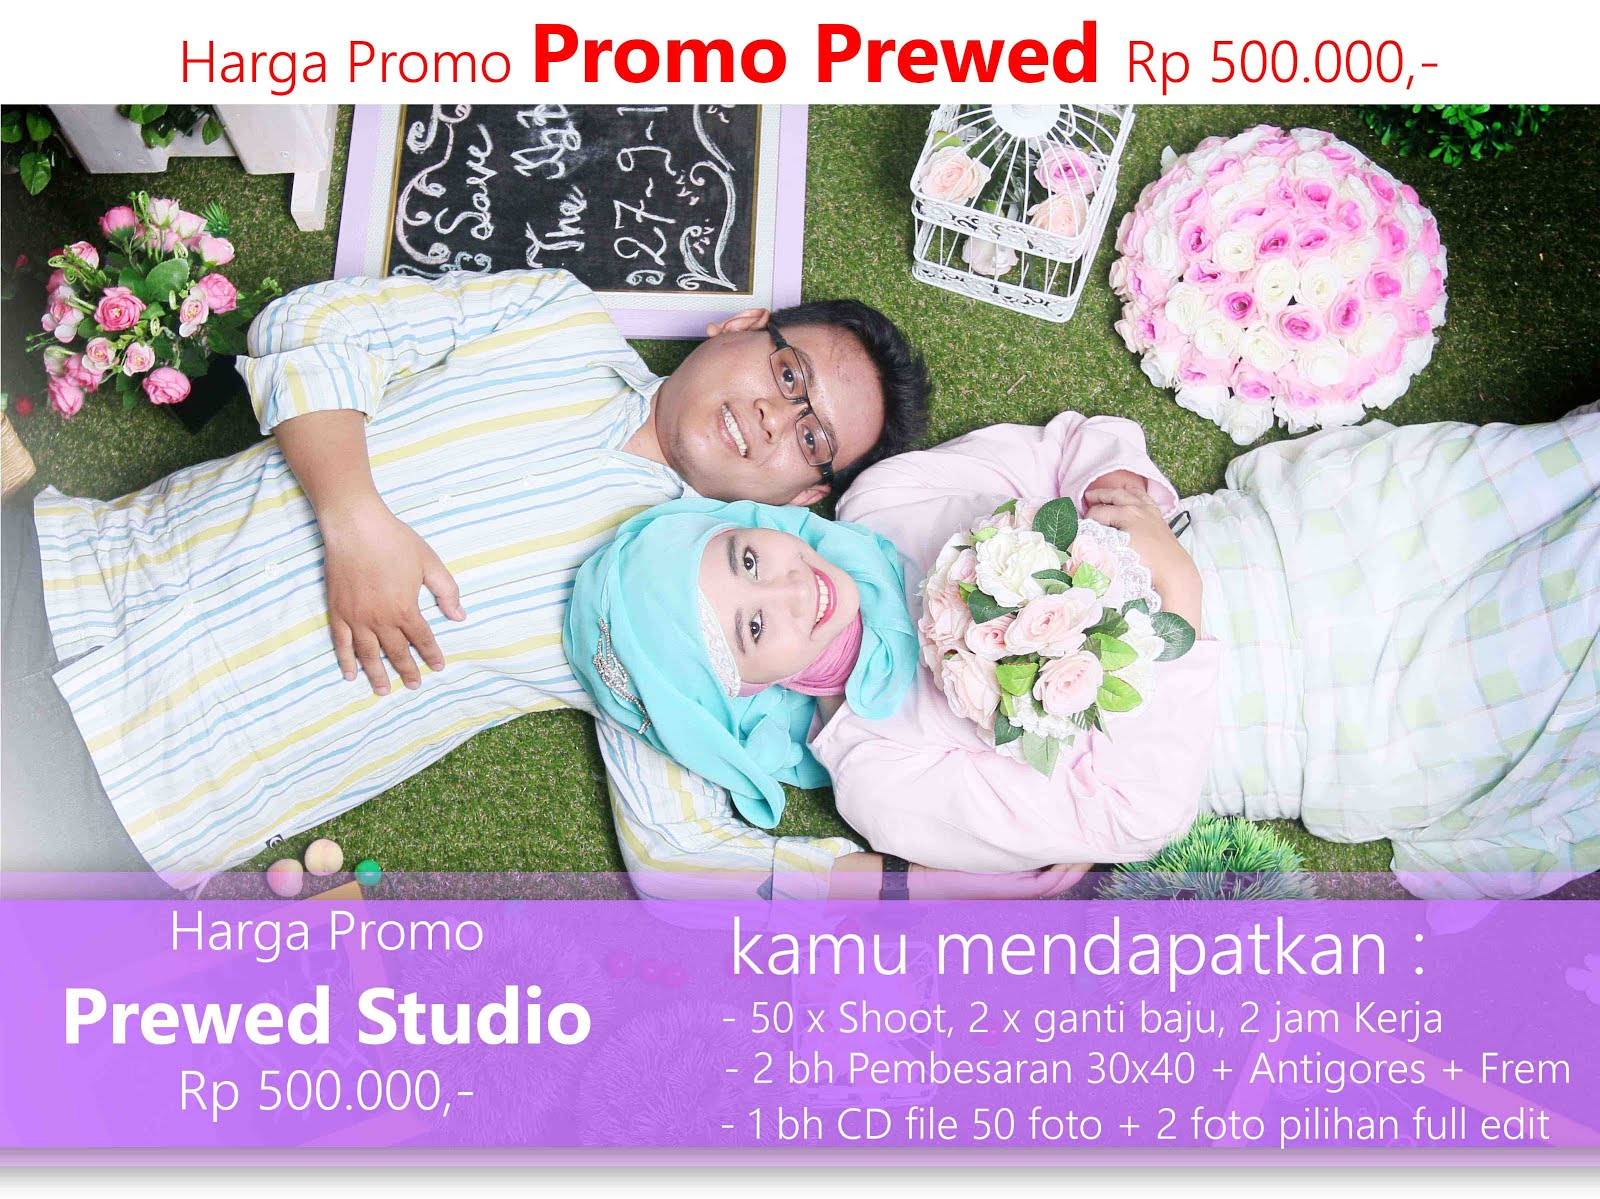 PROMO PREWED INDOOR